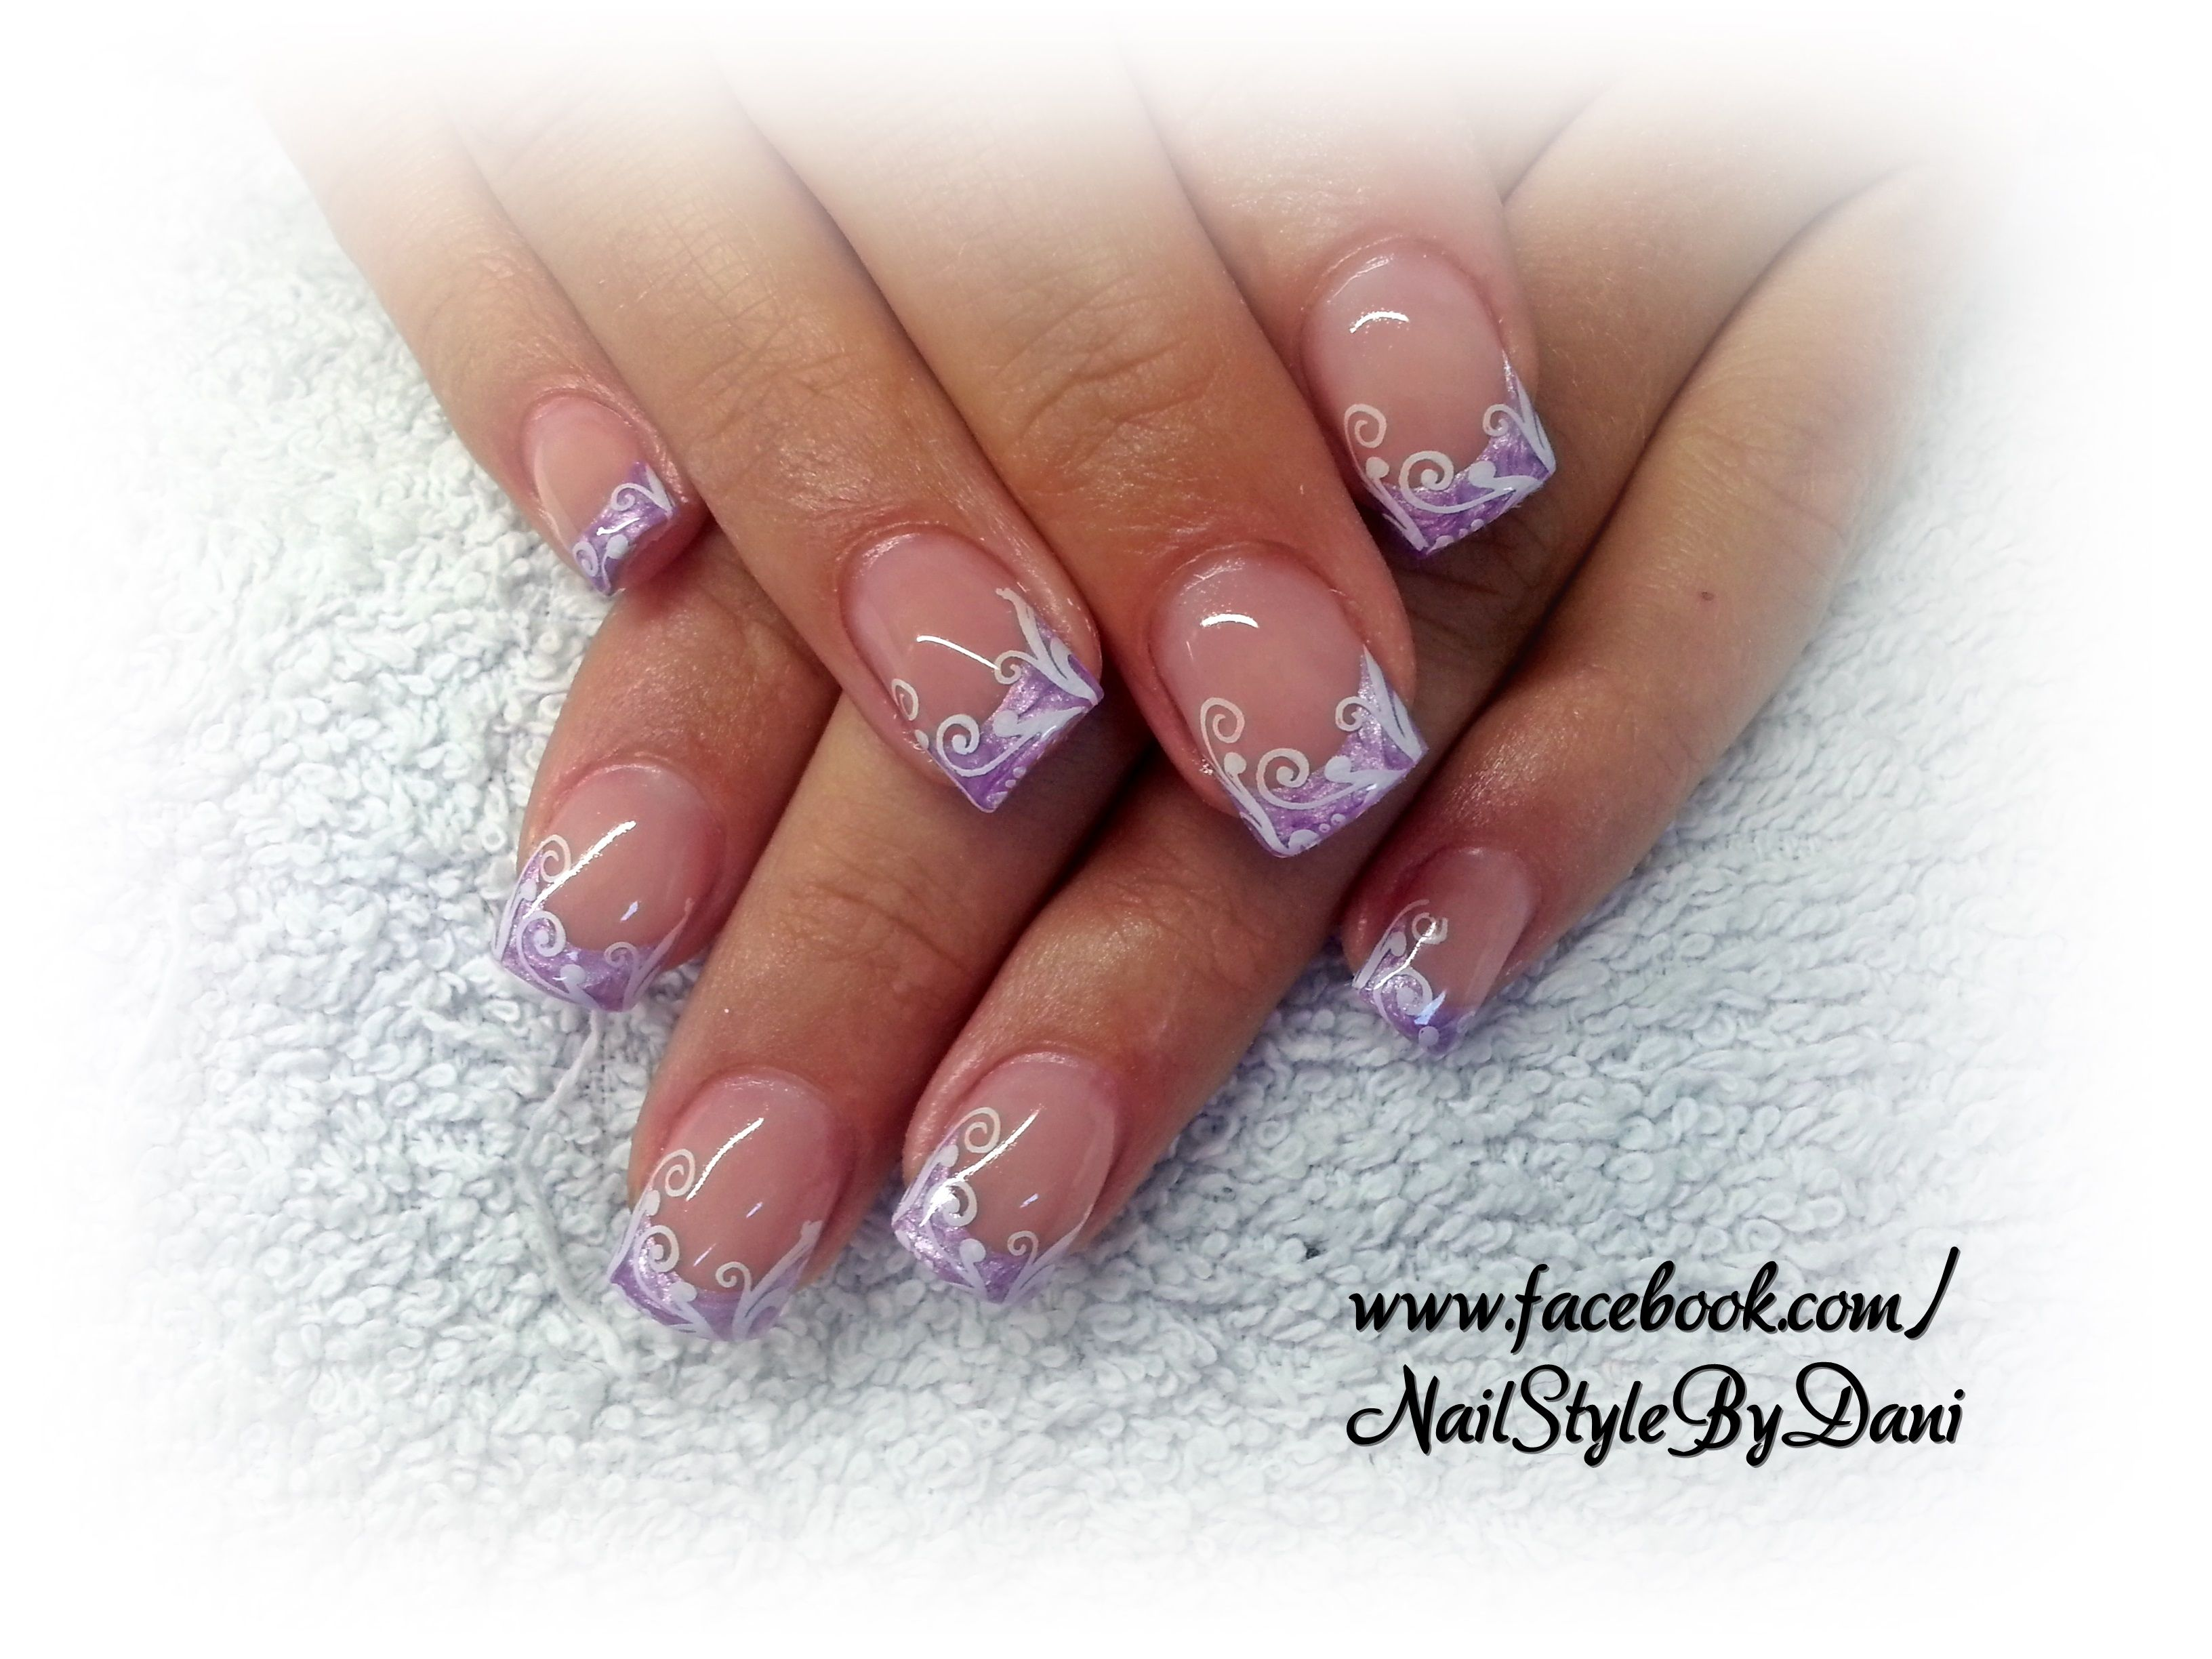 Lilac with stamping - www.facebook.com/NailStyleByDani